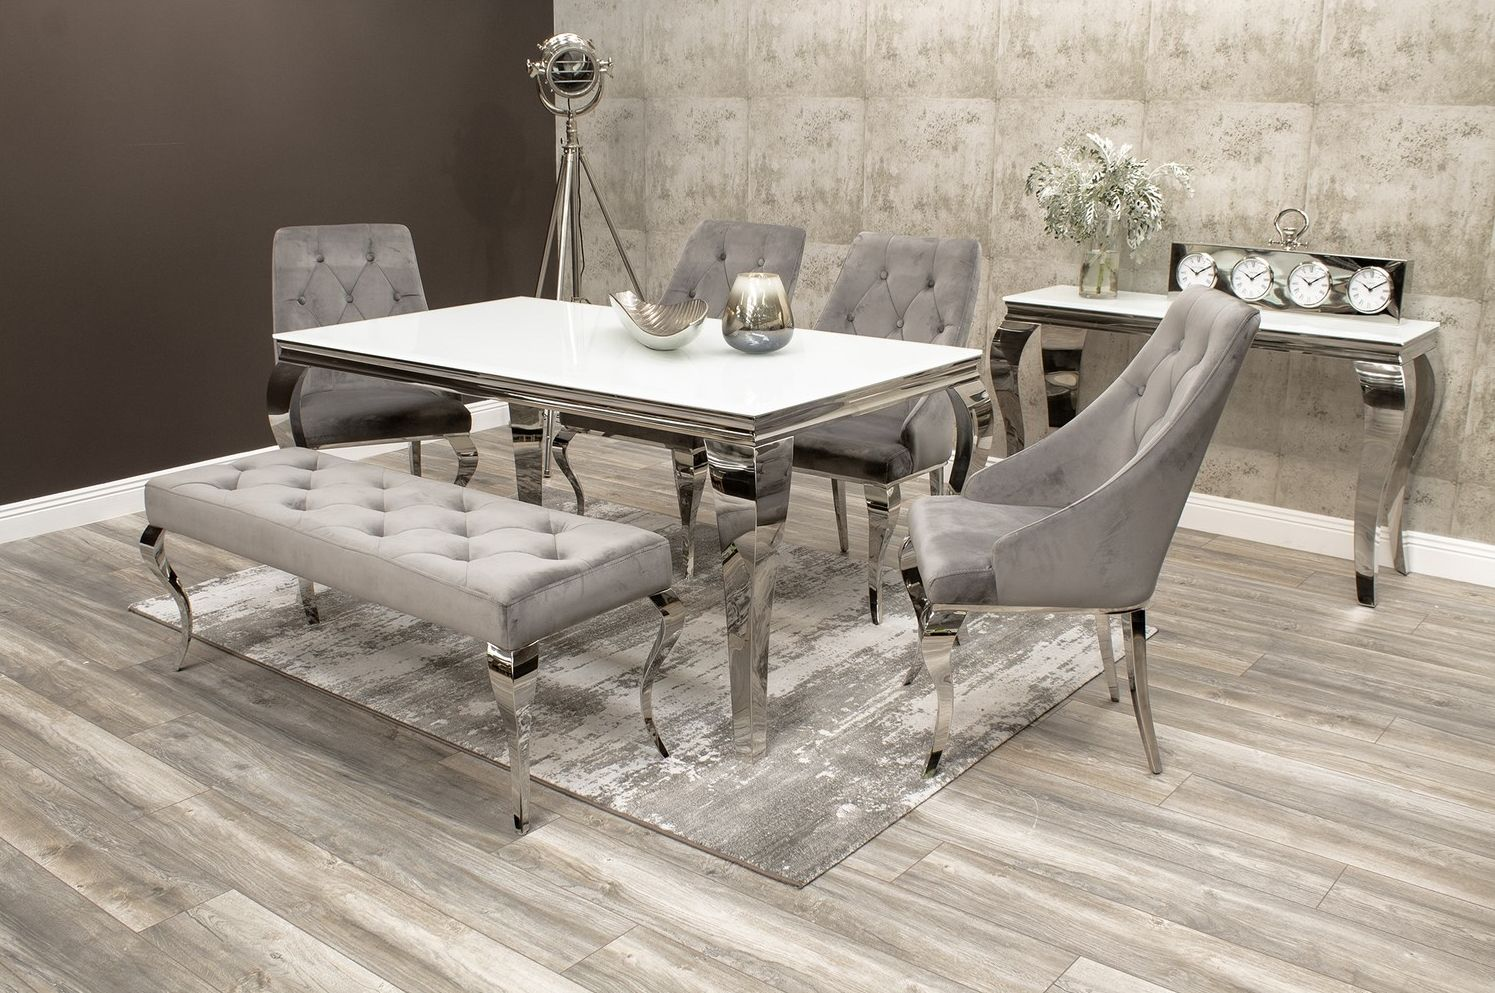 Louis Mirrored Dining Table With 4 Grey Chairs And Bench In Velvet